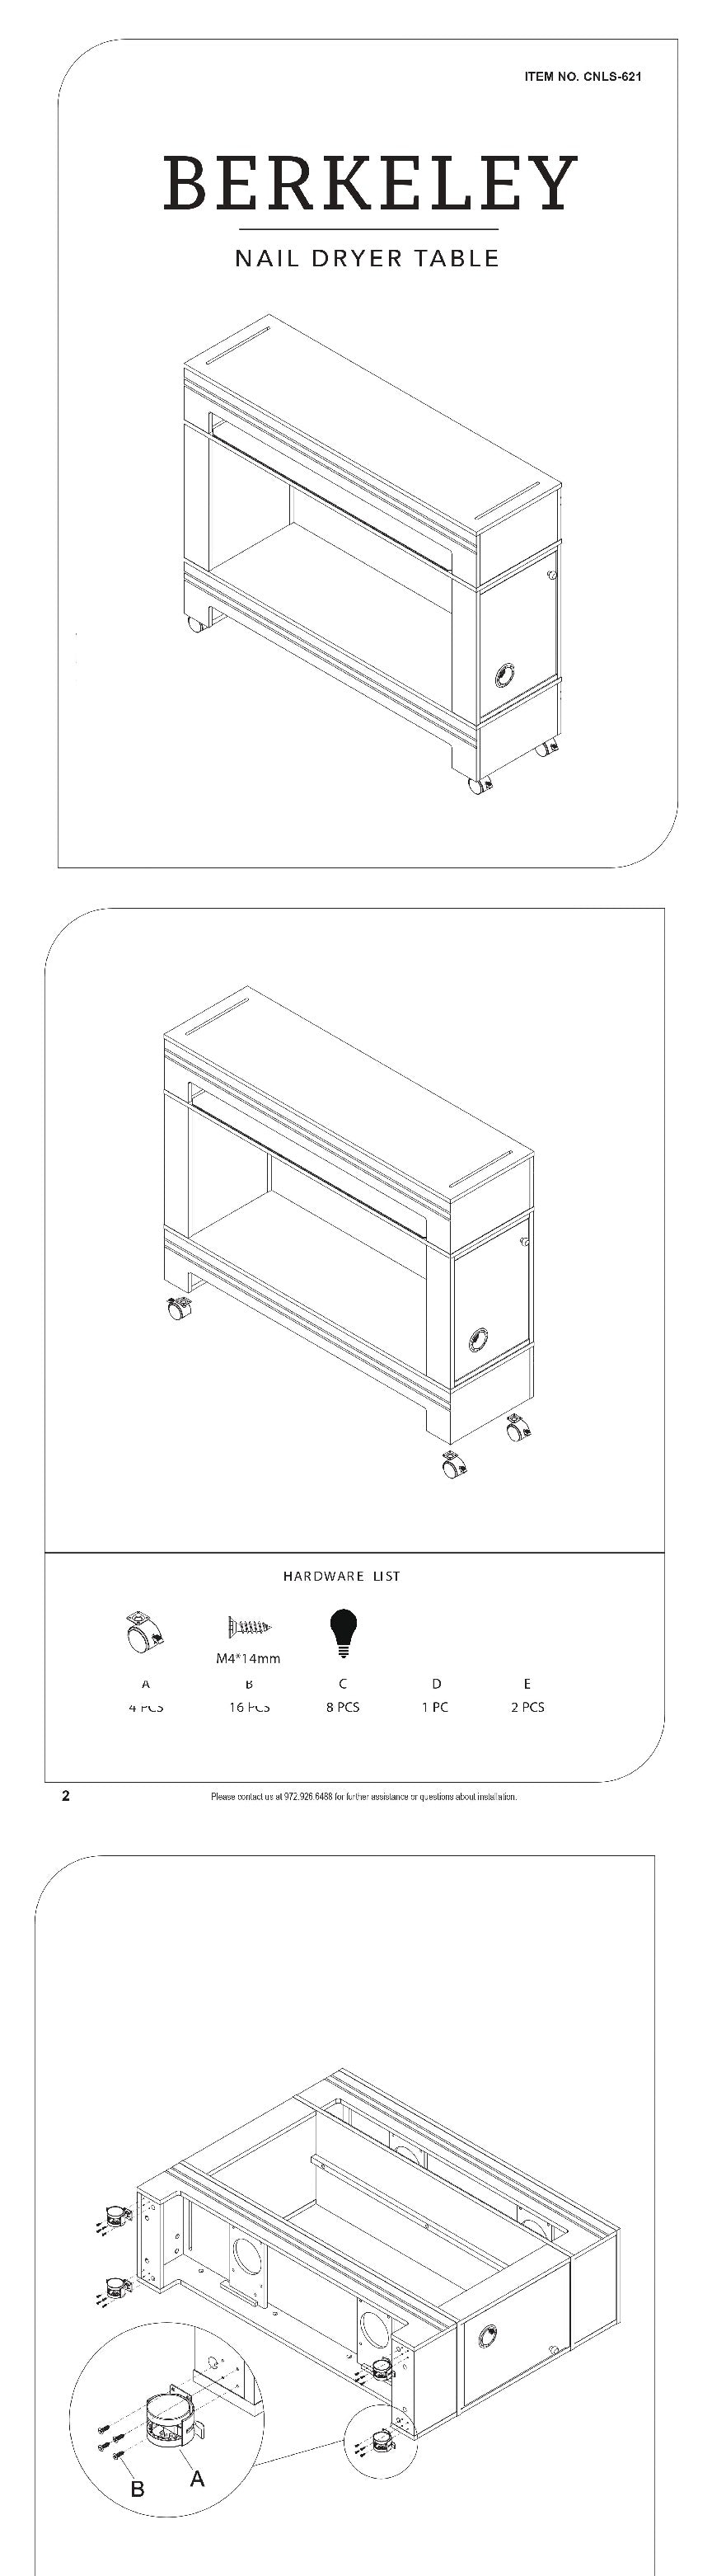 https://cdn.shopify.com/s/files/1/0529/0246/1630/files/berkeley_nail_dryer_table_manual_and_assembly